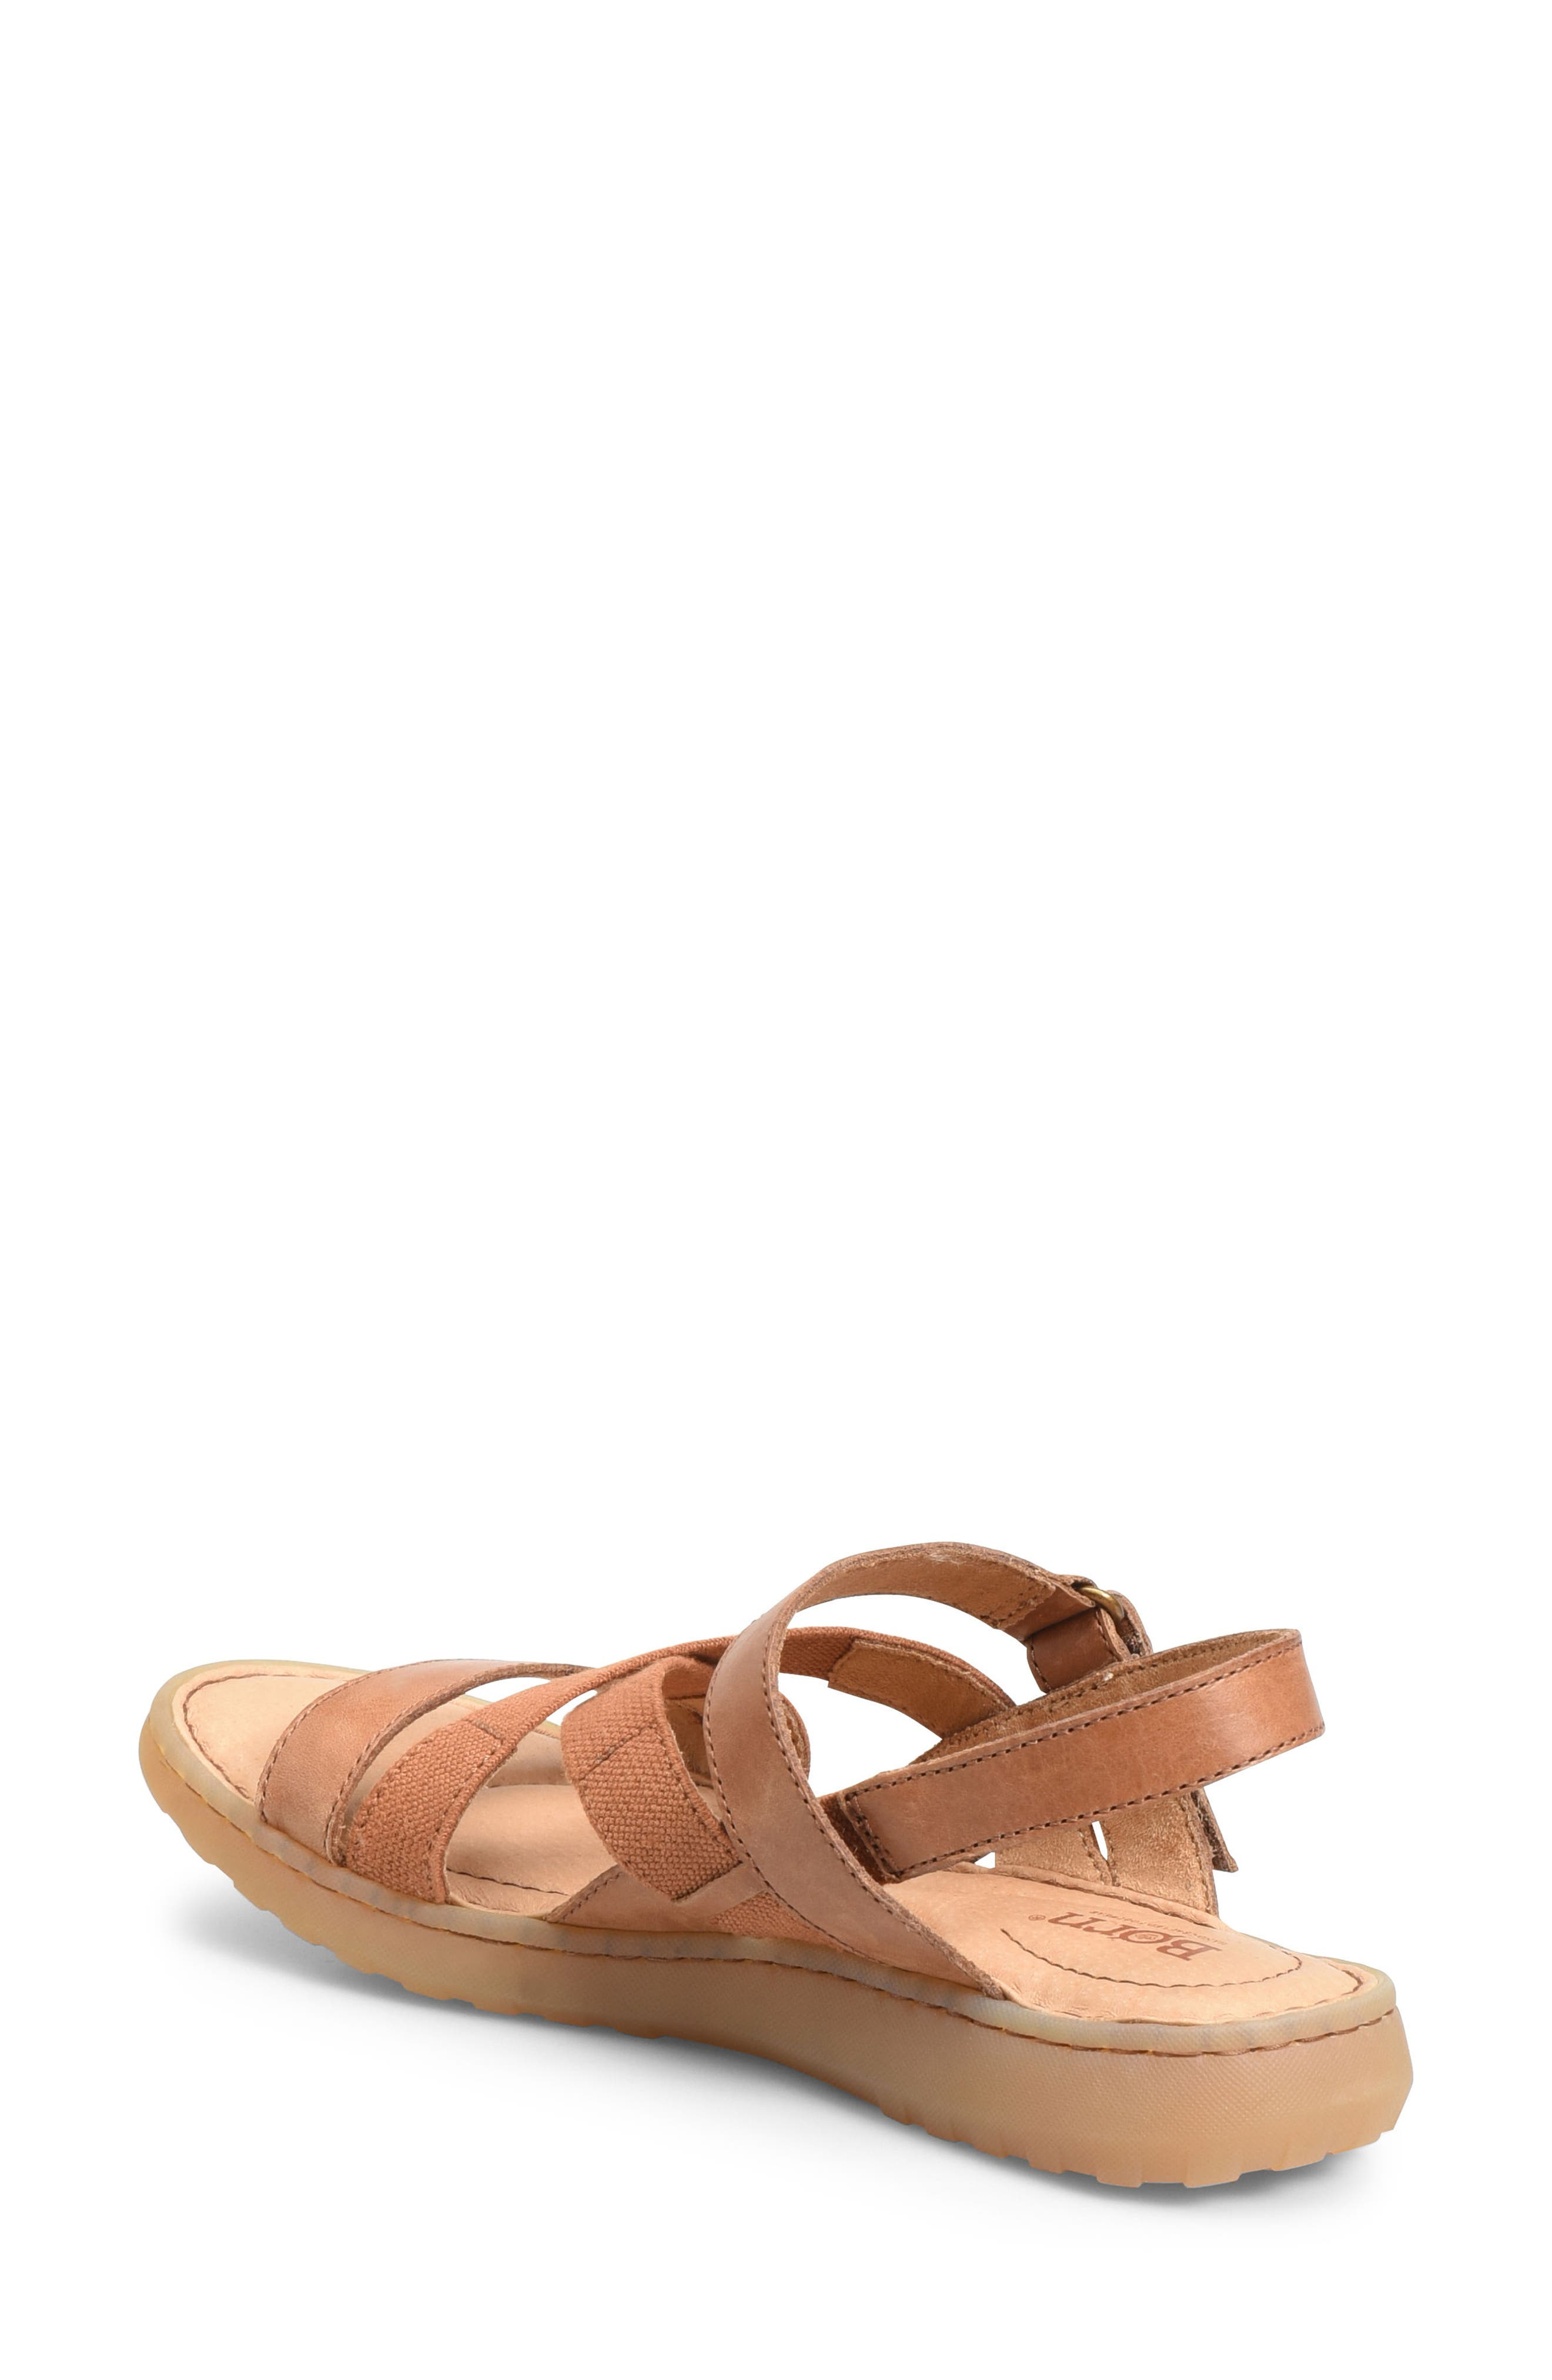 Manta Sandal,                             Alternate thumbnail 2, color,                             Brown Leather